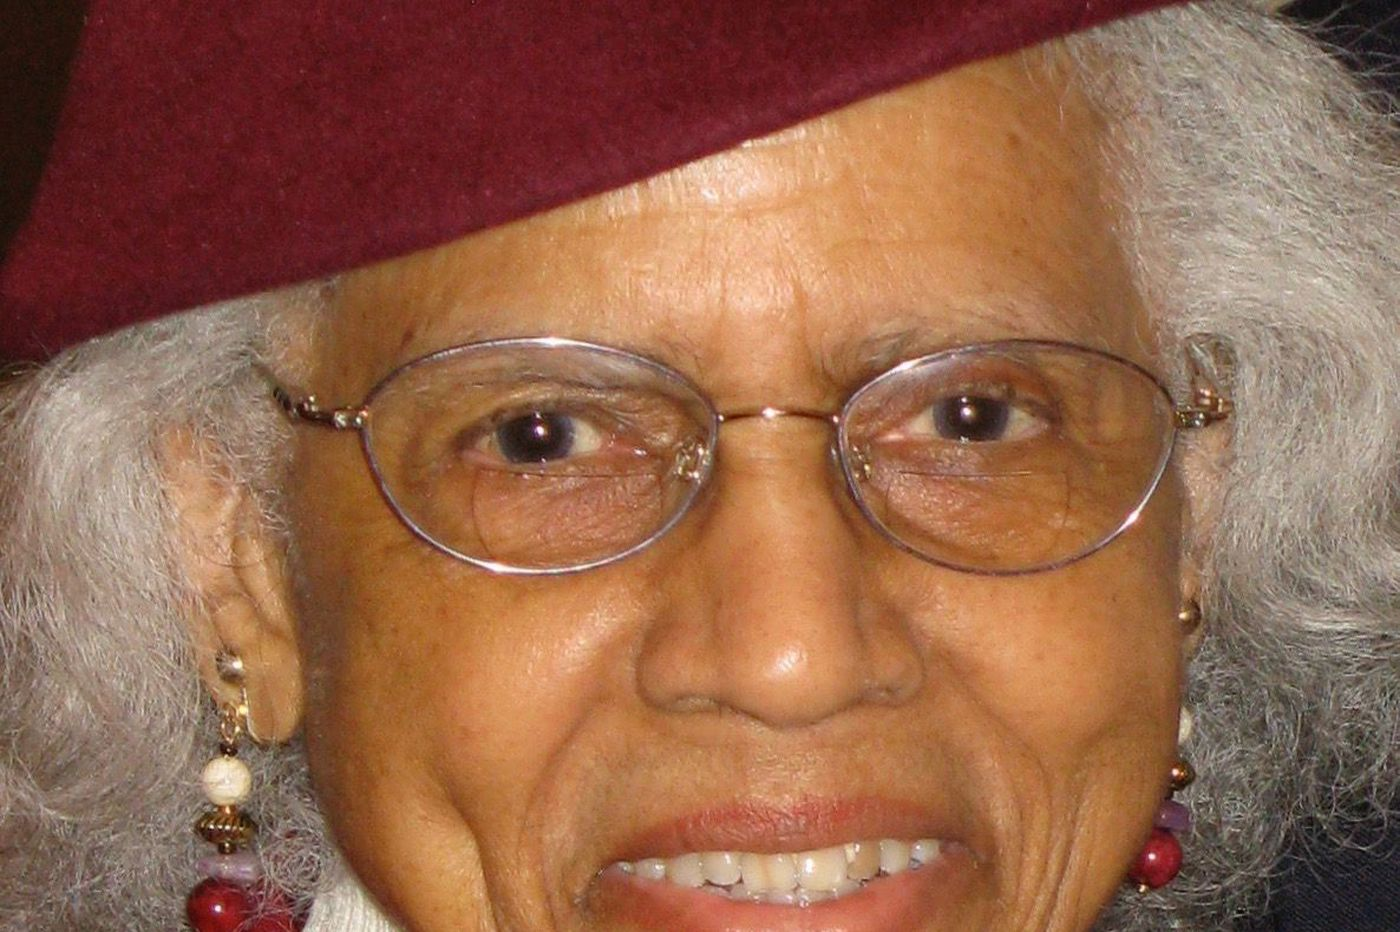 Ruth Fleming Hunt, 95, retired teacher, reading specialist in Philly public schools